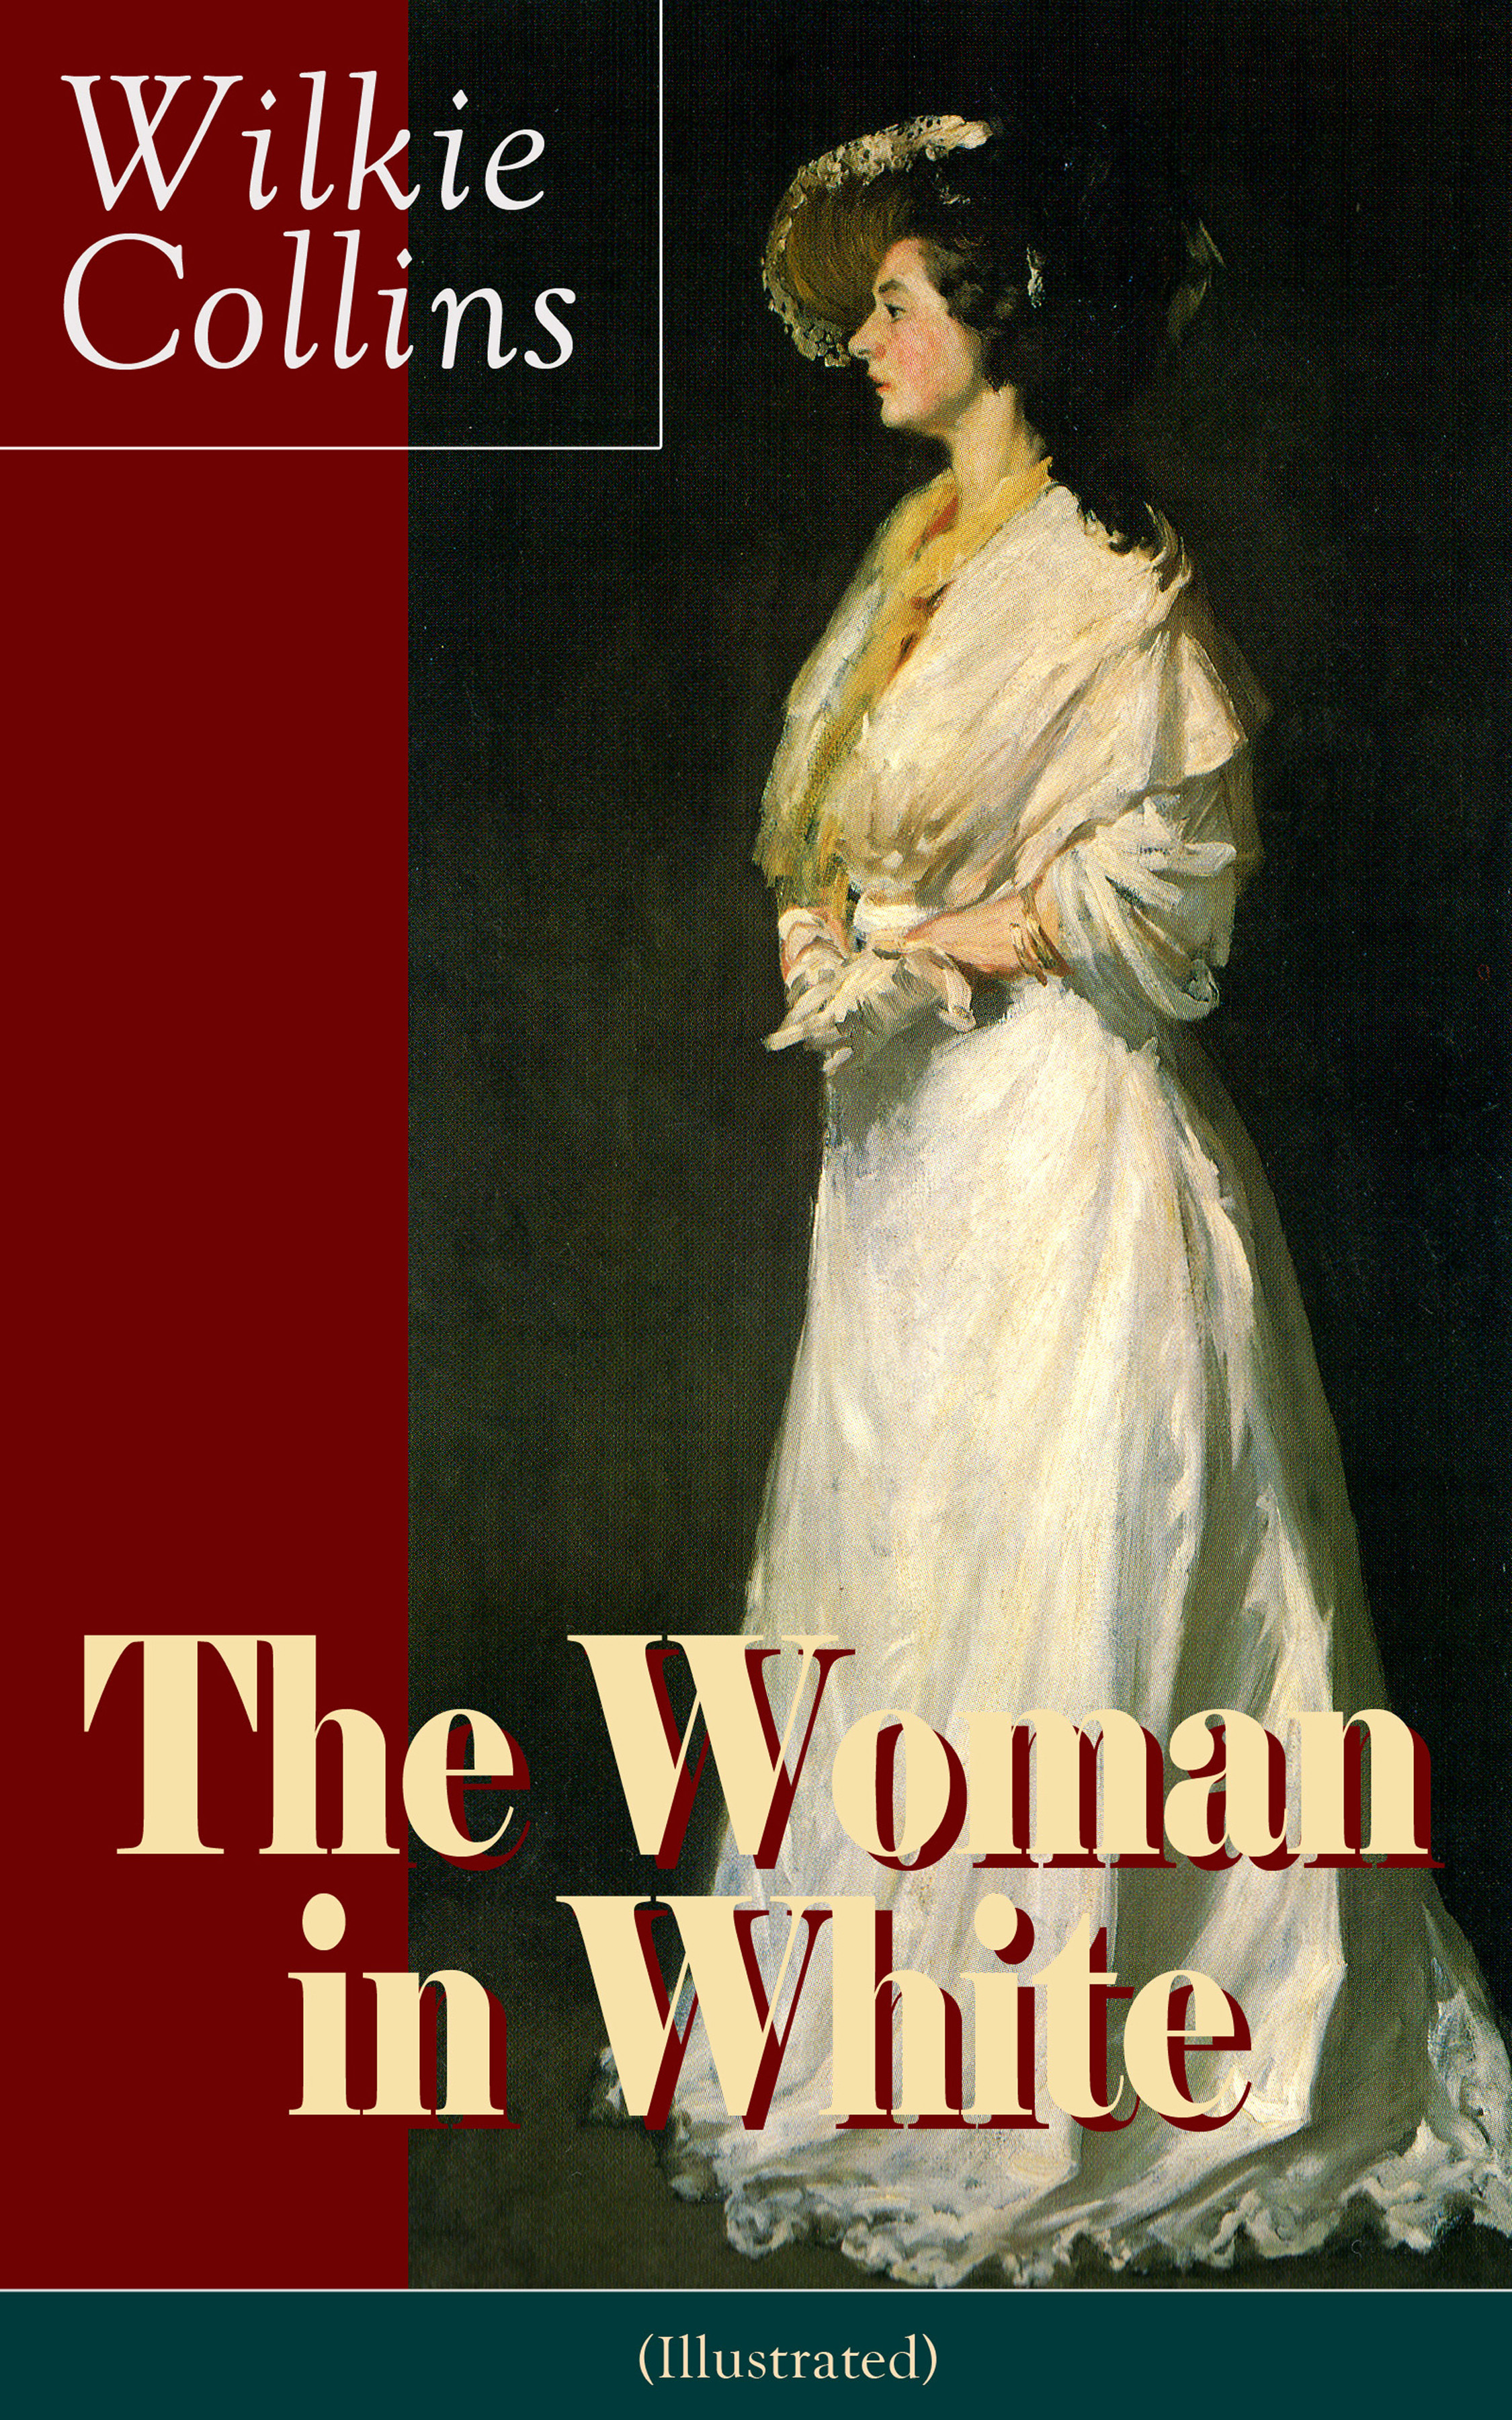 лучшая цена Wilkie Collins Collins The Woman in White (Illustrated): A Mystery Suspense Novel from the prolific English writer, best known for The Moonstone, No Name, Armadale, The Law and The Lady, The Dead Secret, Man and Wife, Poor Miss Finch and The Black Robe